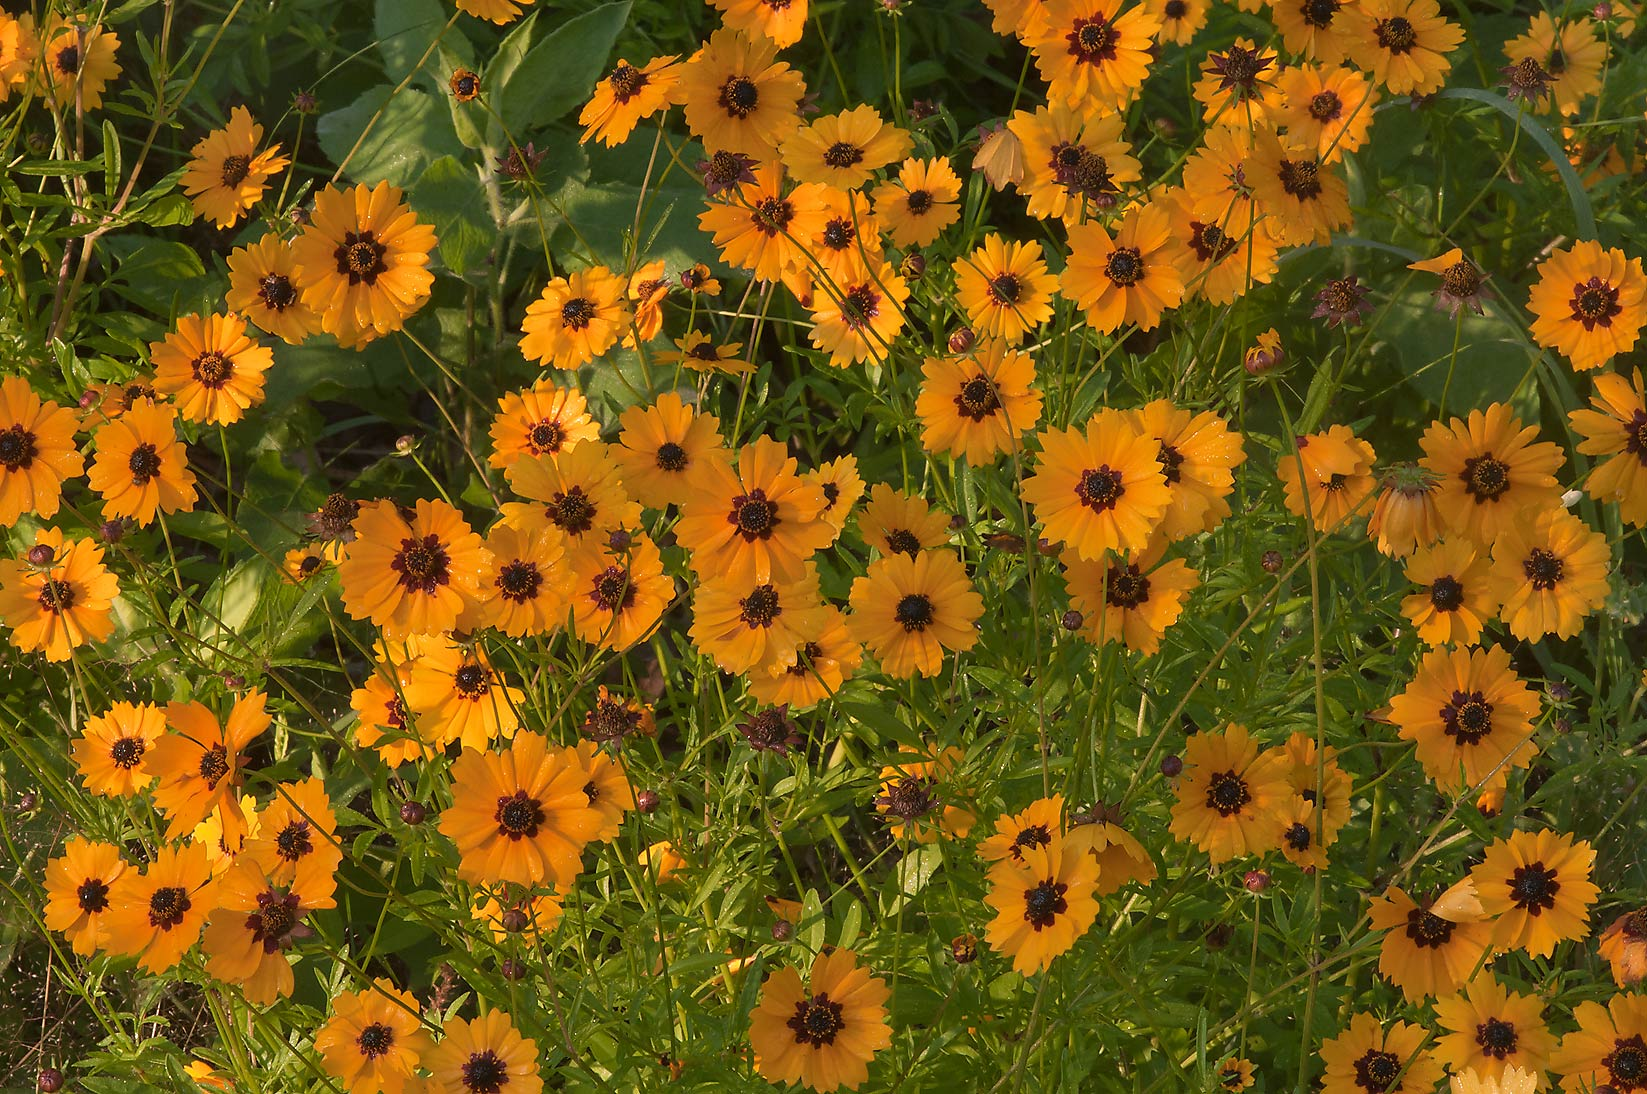 Coreopsis flowers at Post Oak Trail in Lick Creek Park. College Station, Texas